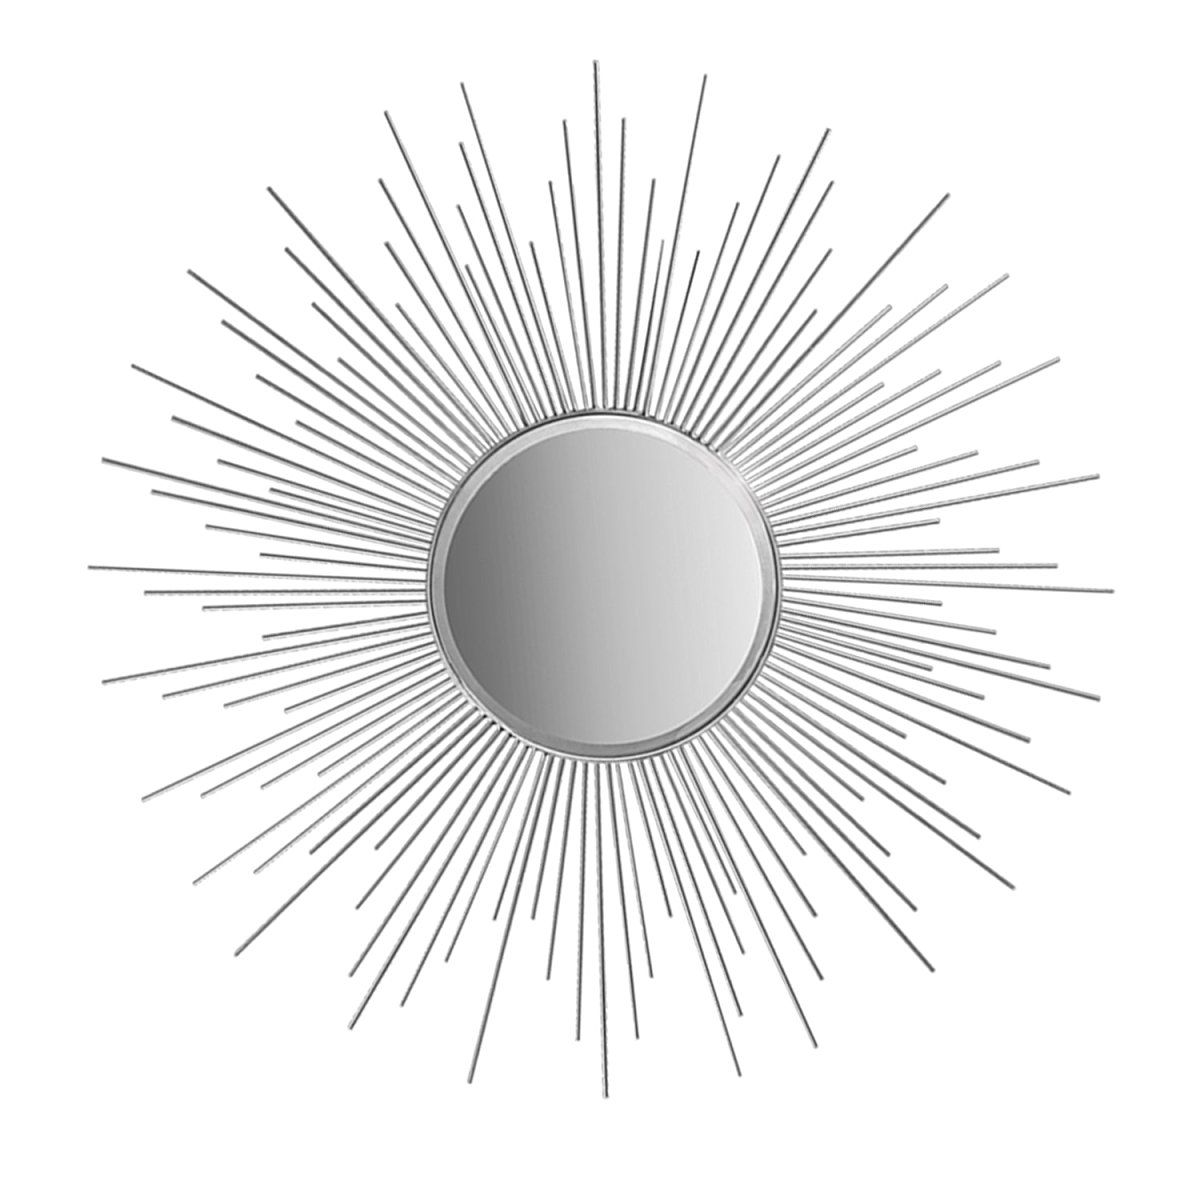 36 Quot Decorative Wall Hanging Mirror In Sunburst Shape